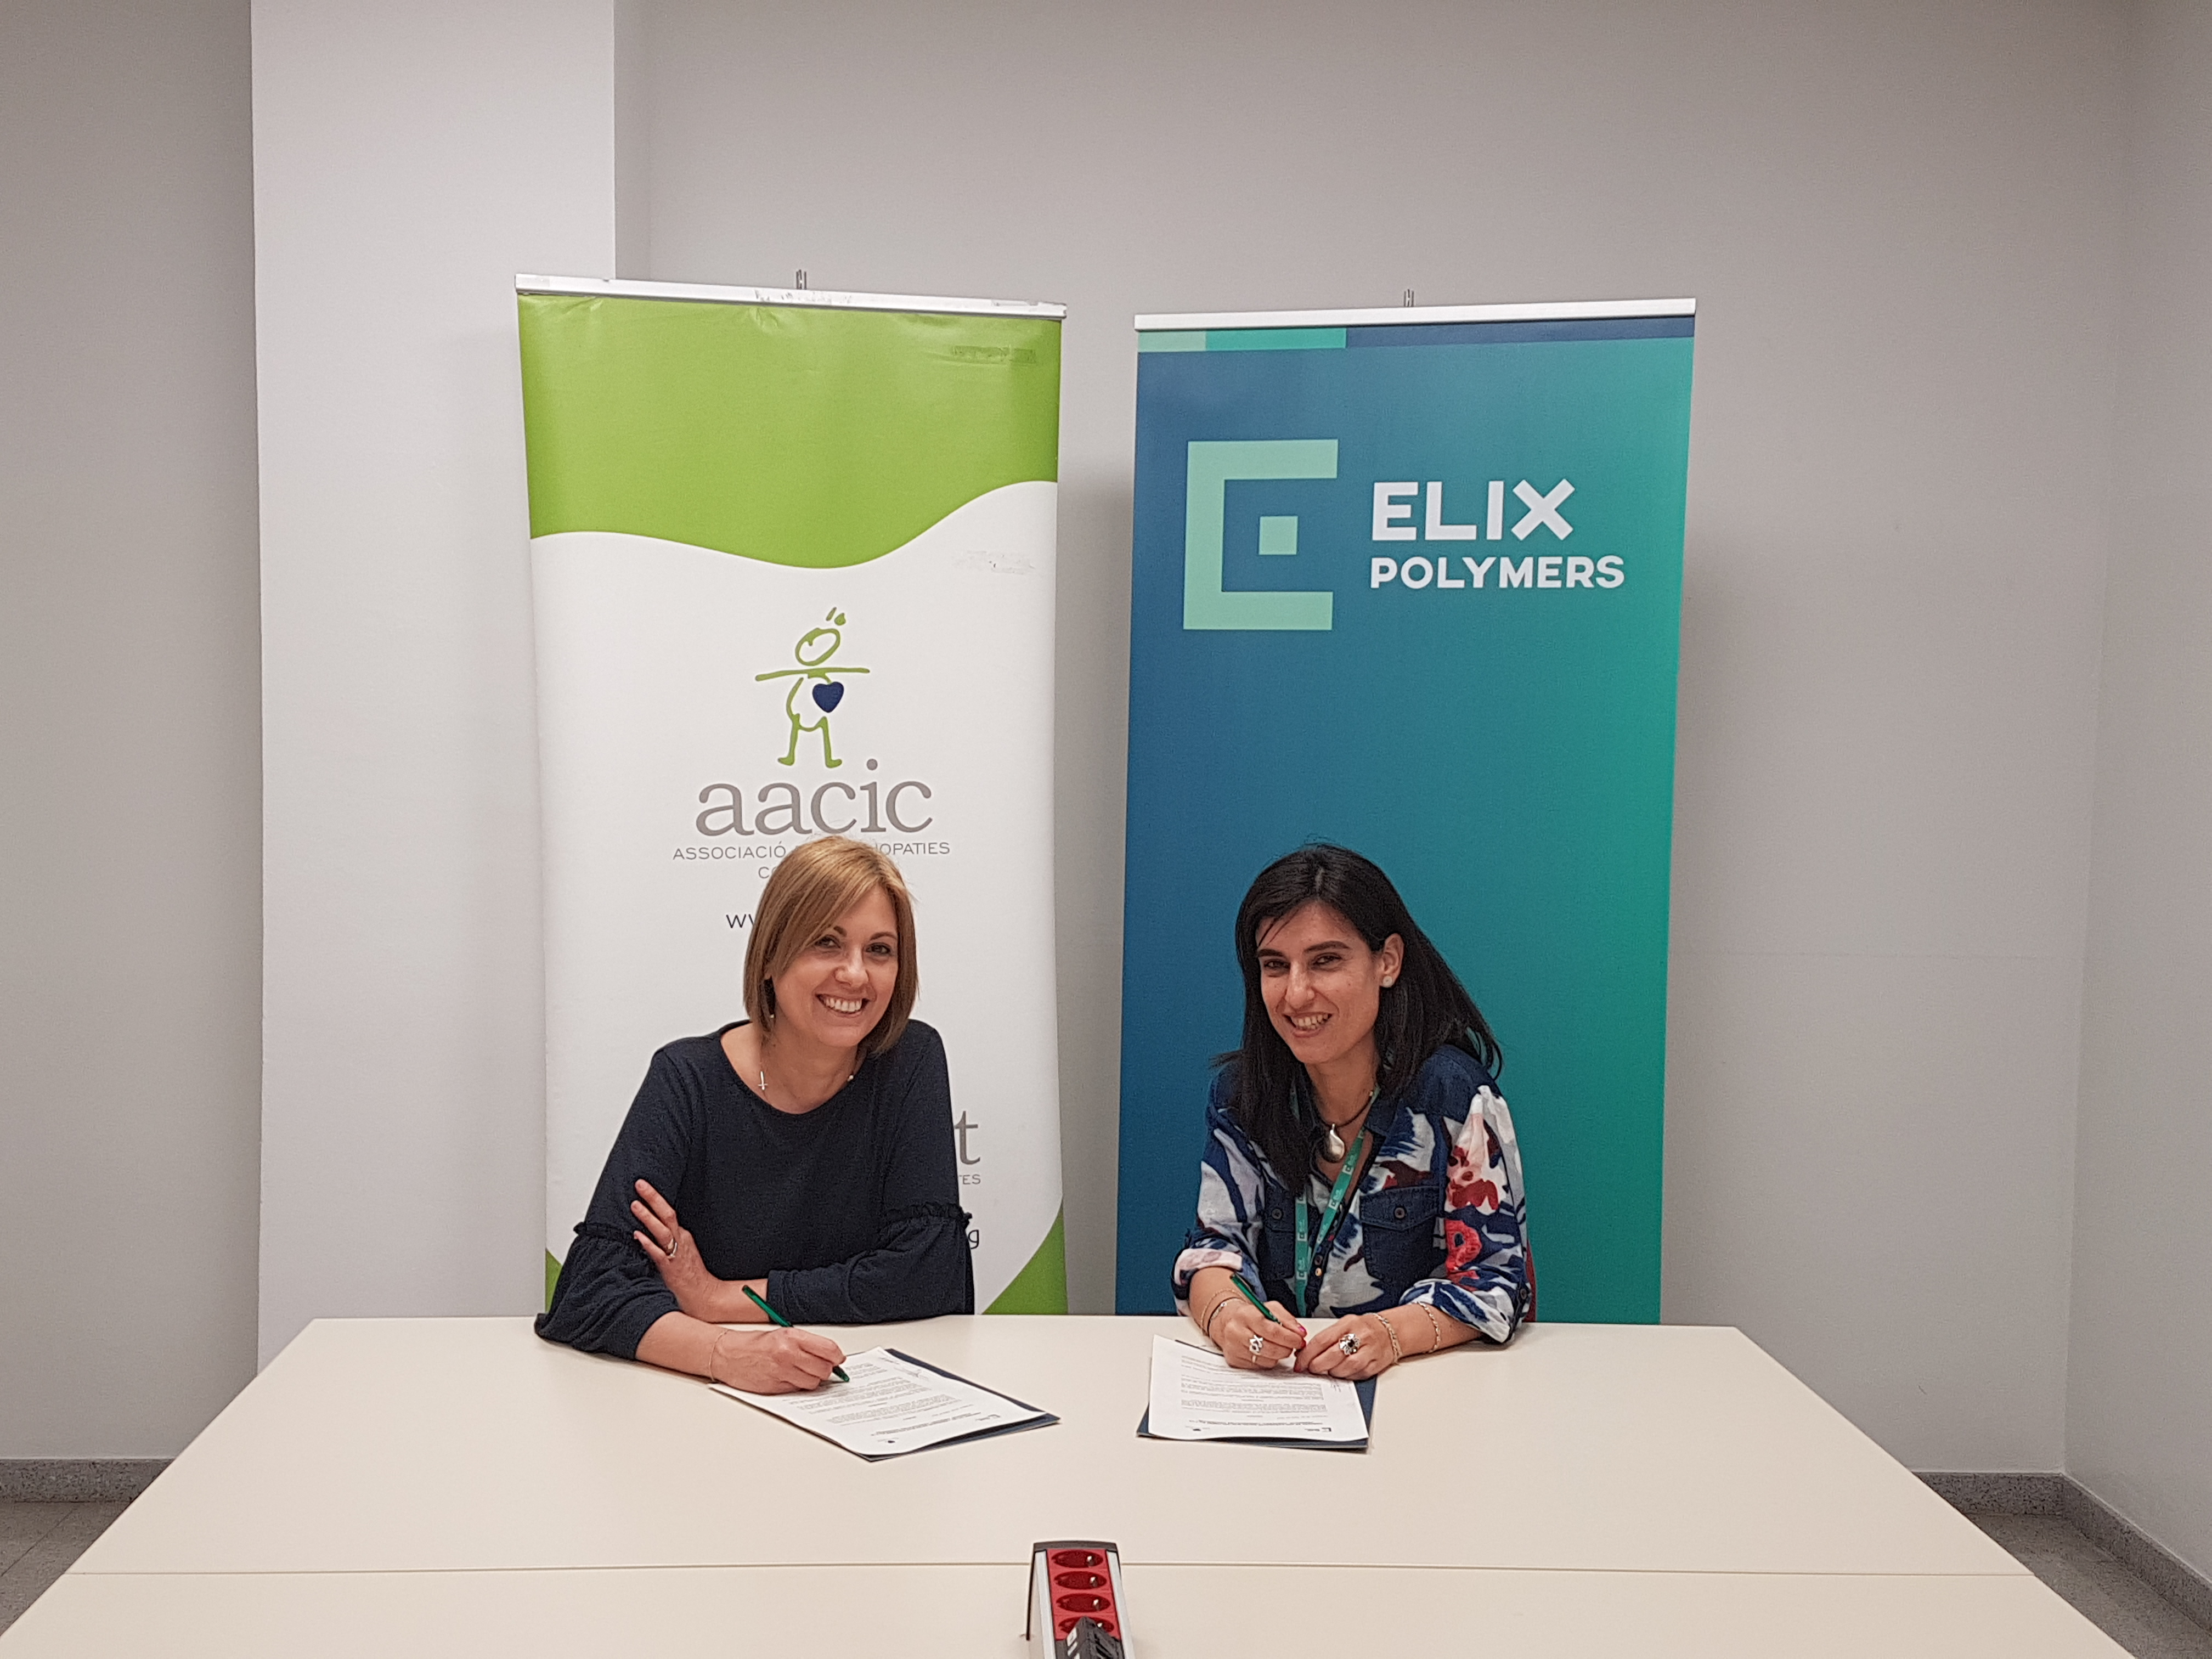 ELIX Polymers committed CorAvant congenital heart disease foundation